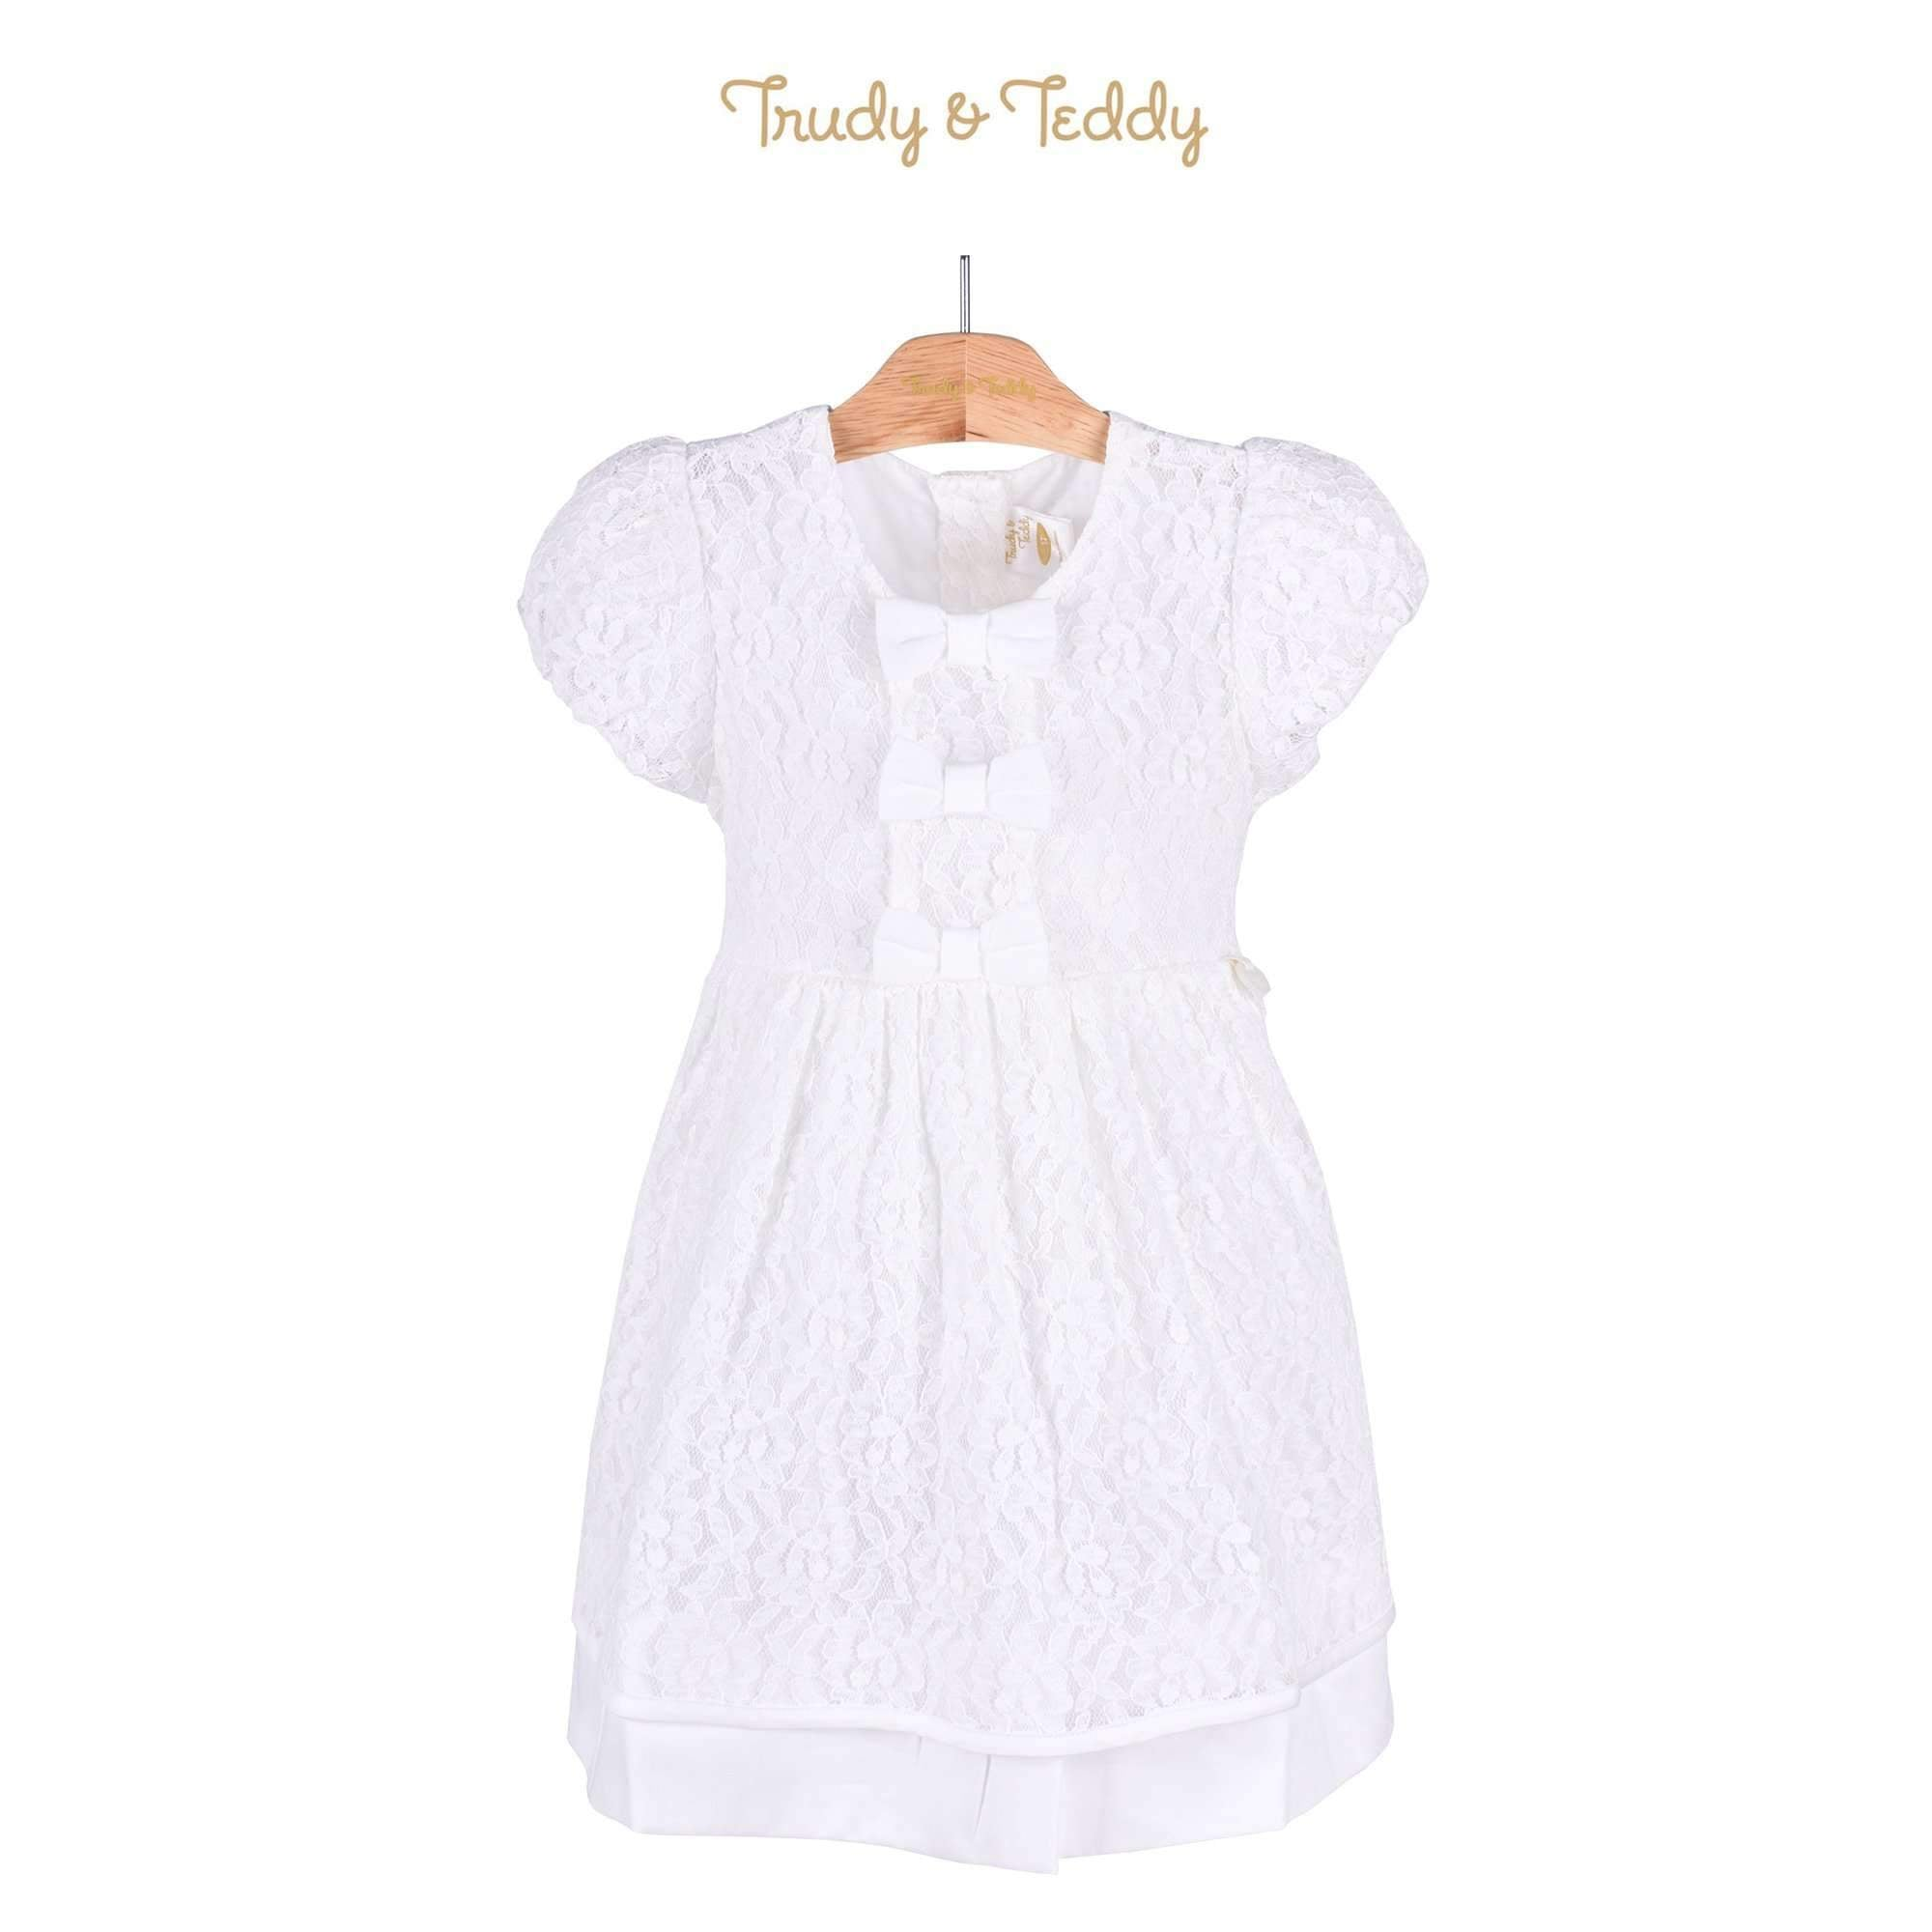 Trudy & Teddy Toddler Girl Short Sleeve Dress 815104-312 : Buy Trudy & Teddy online at CMG.MY